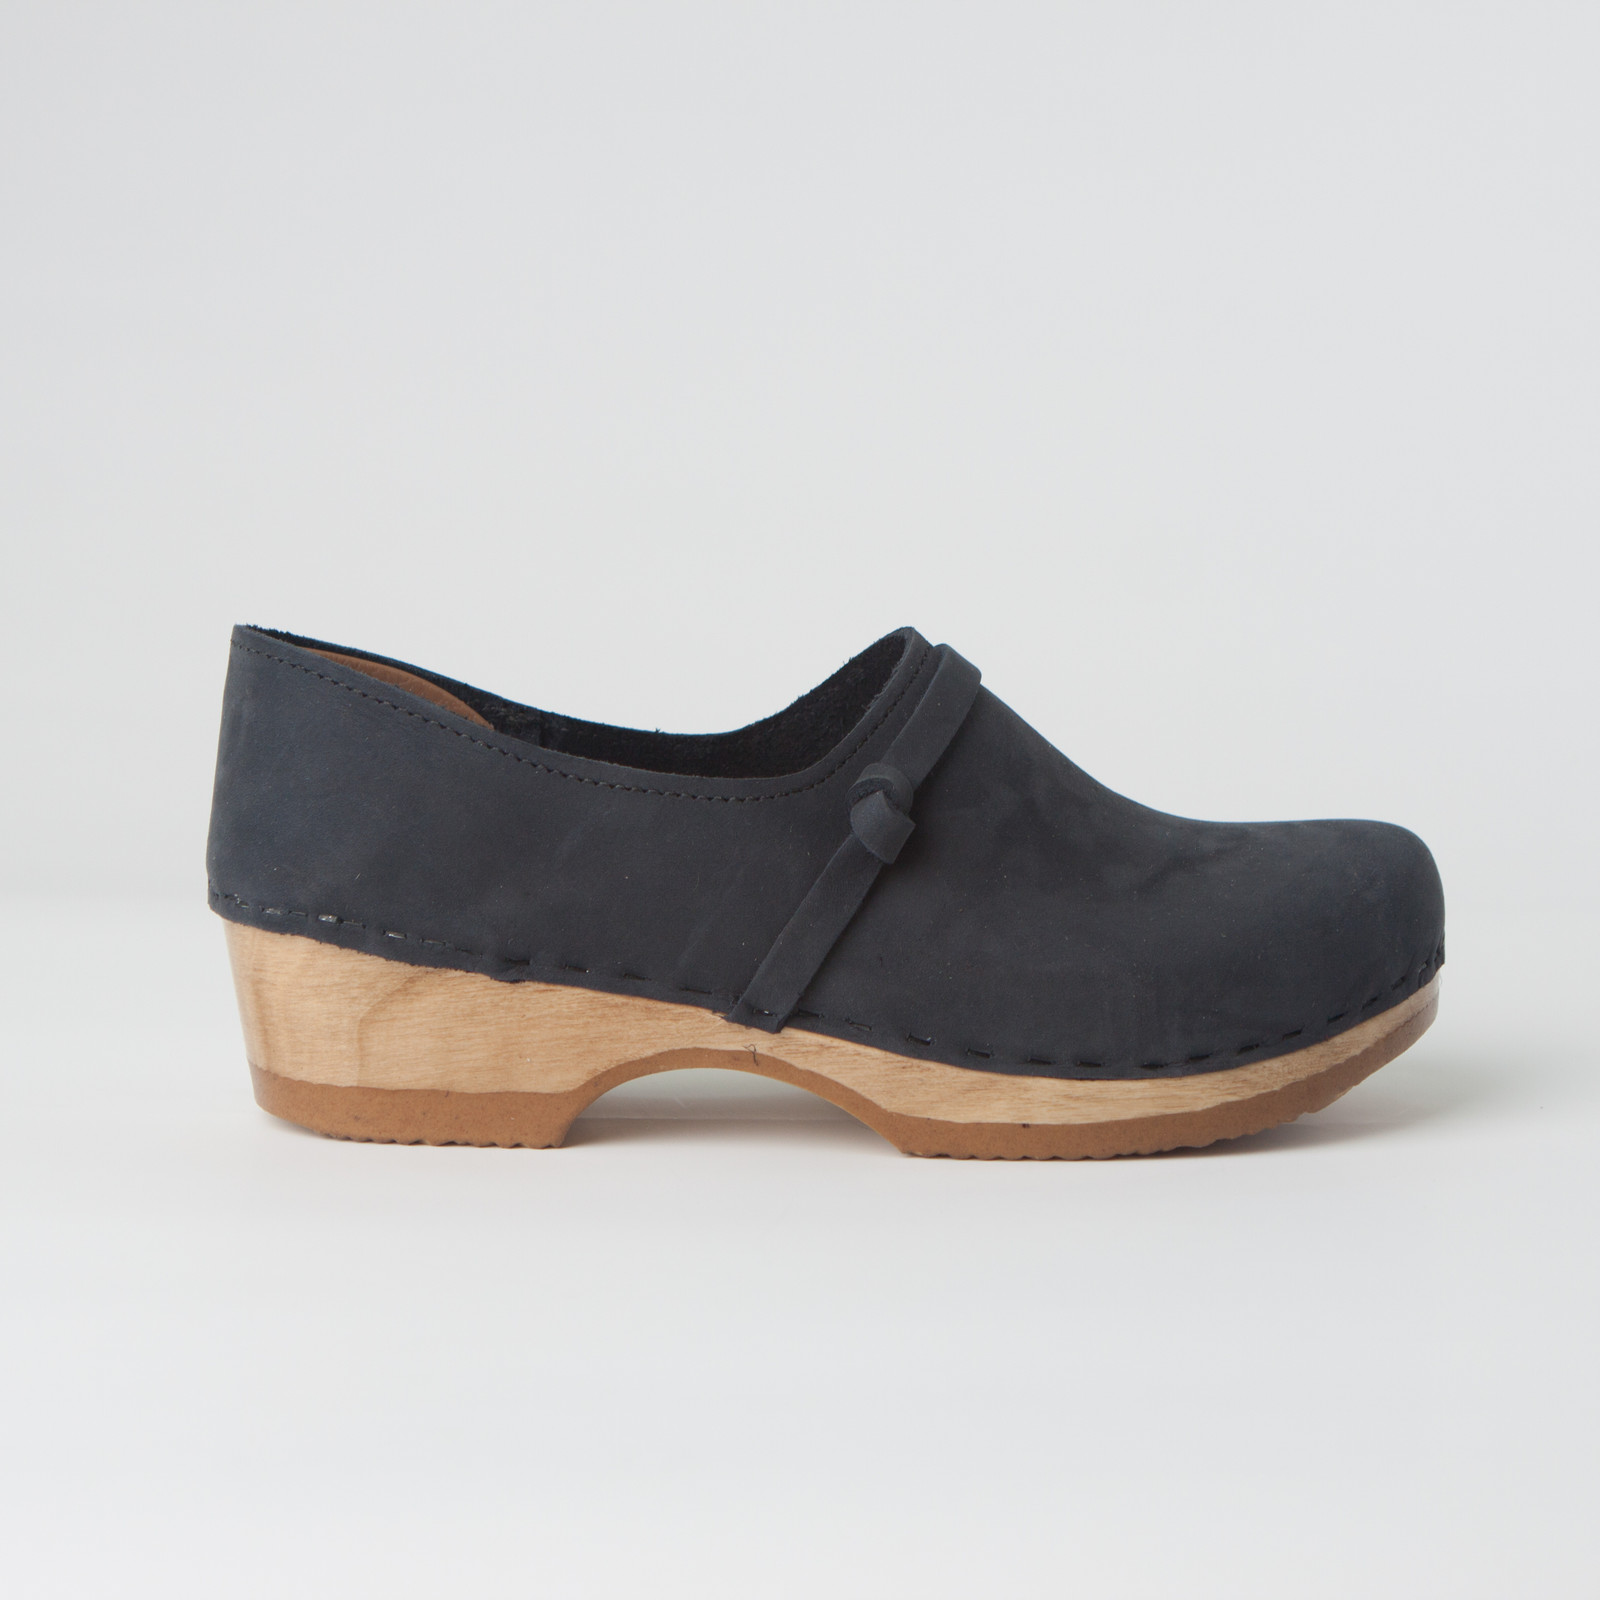 Closed Back Clogs - Knot Strap - Low Heels